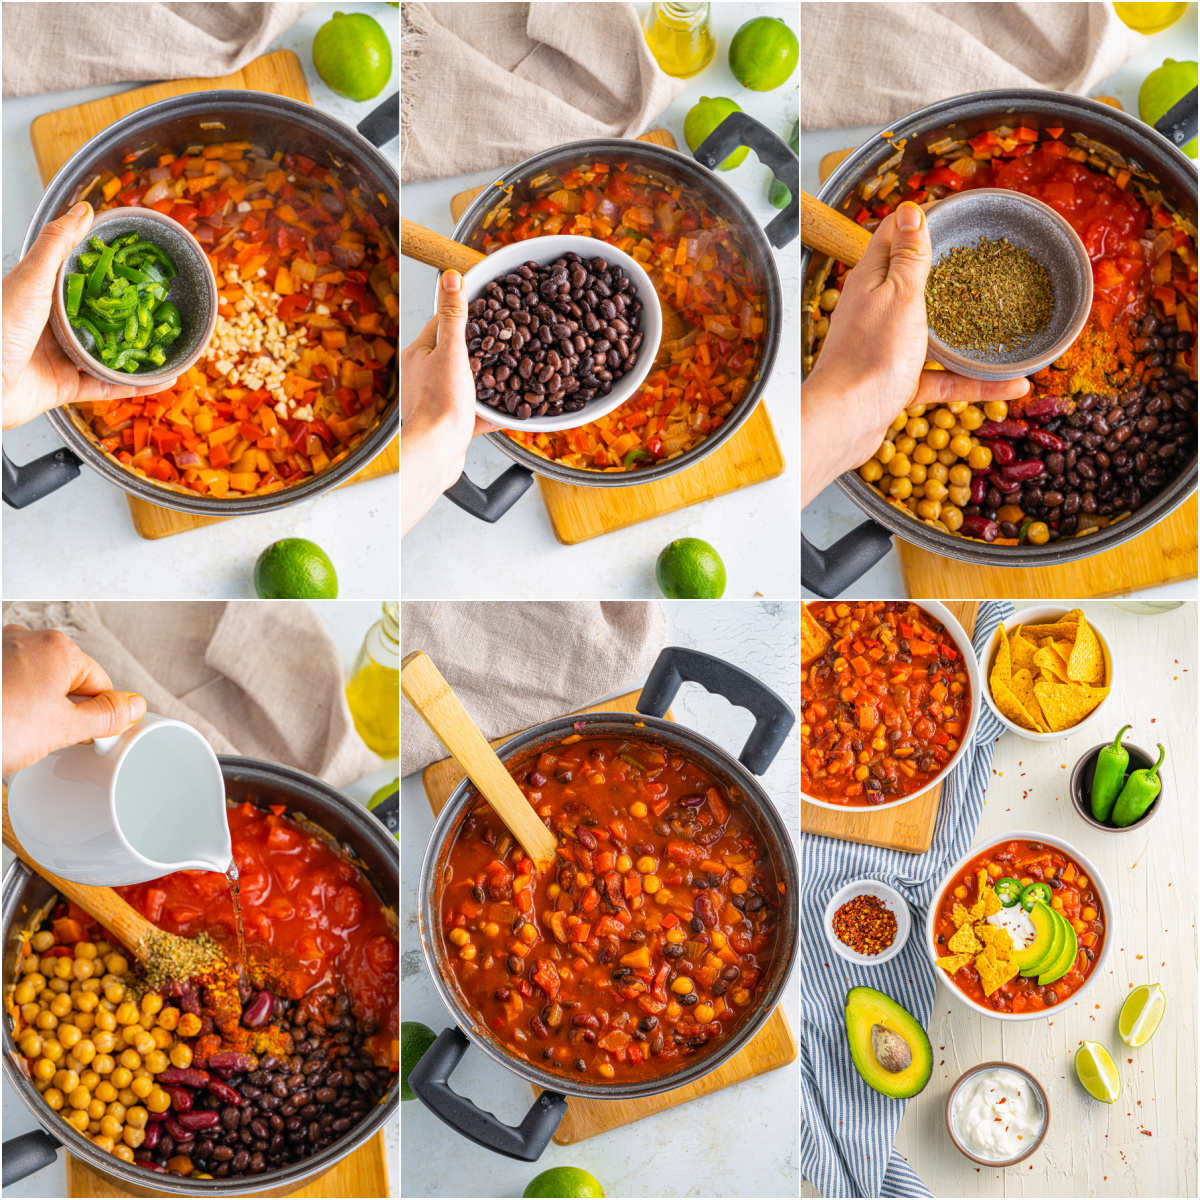 Step by step photos on how to make a Vegetarian Chili Recipe.